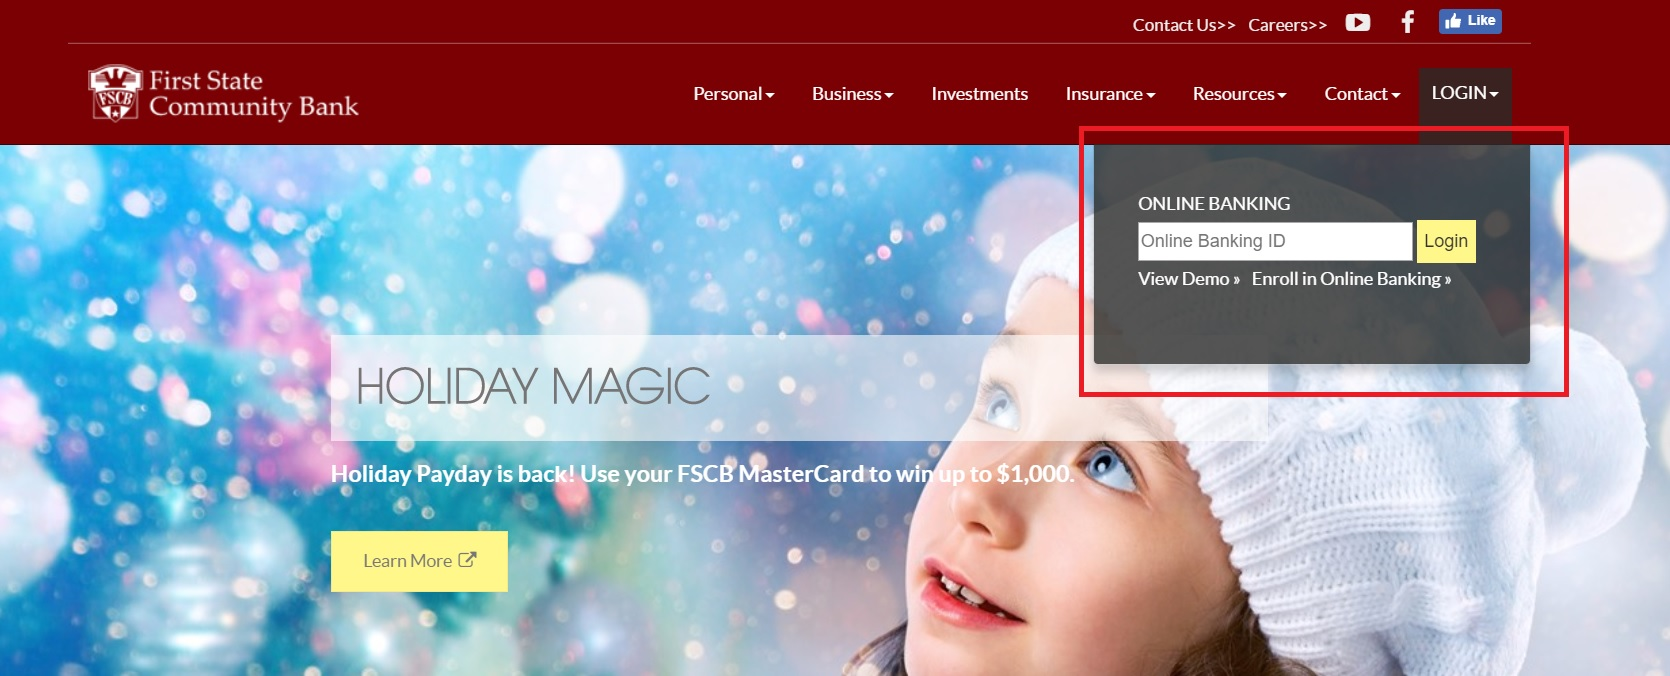 First State Community Bank Online Banking Login